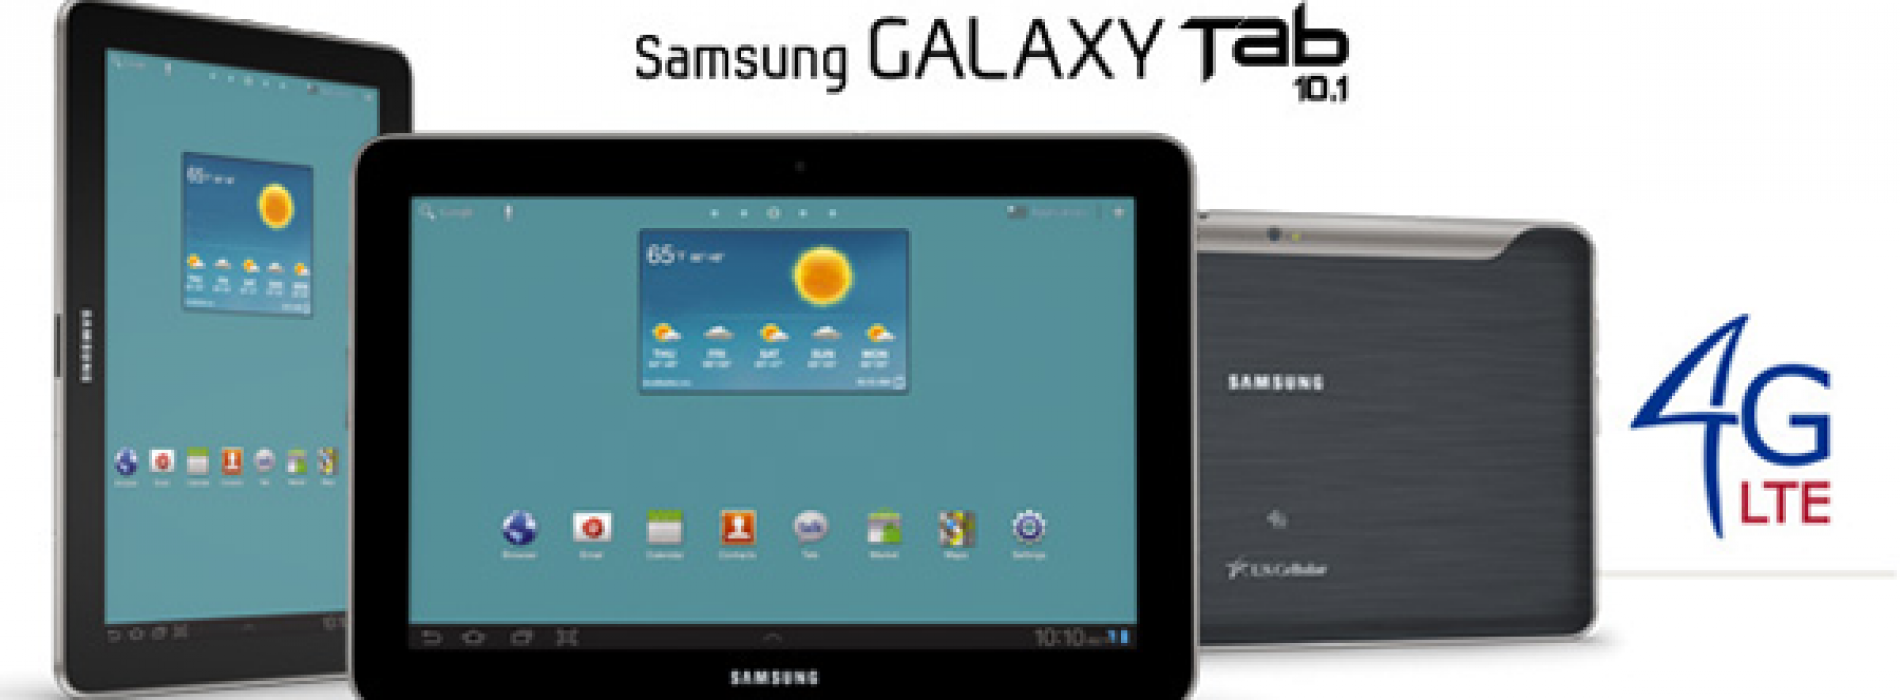 U.S. Cellular adds 4G LTE Samsung Galaxy Tab 10.1 to lineup